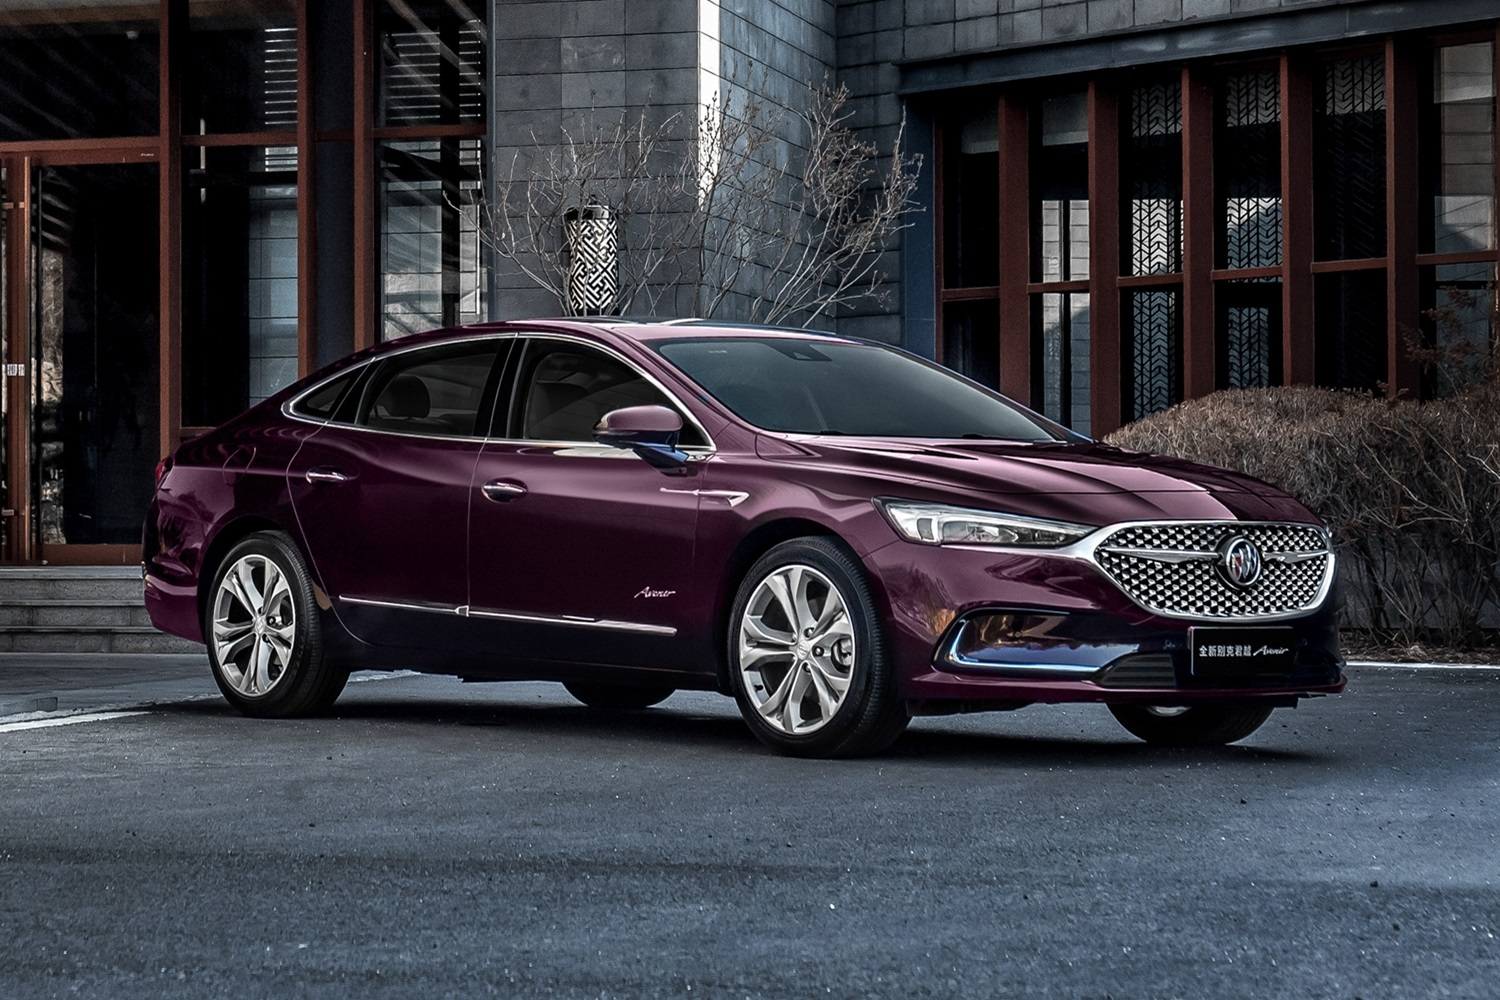 2021 Buick Lacrosse Gets More Refined Than Ever | Gm Authority 2021 Buick Lacrosse Exterior Colors, Interior Colors, Dimensions